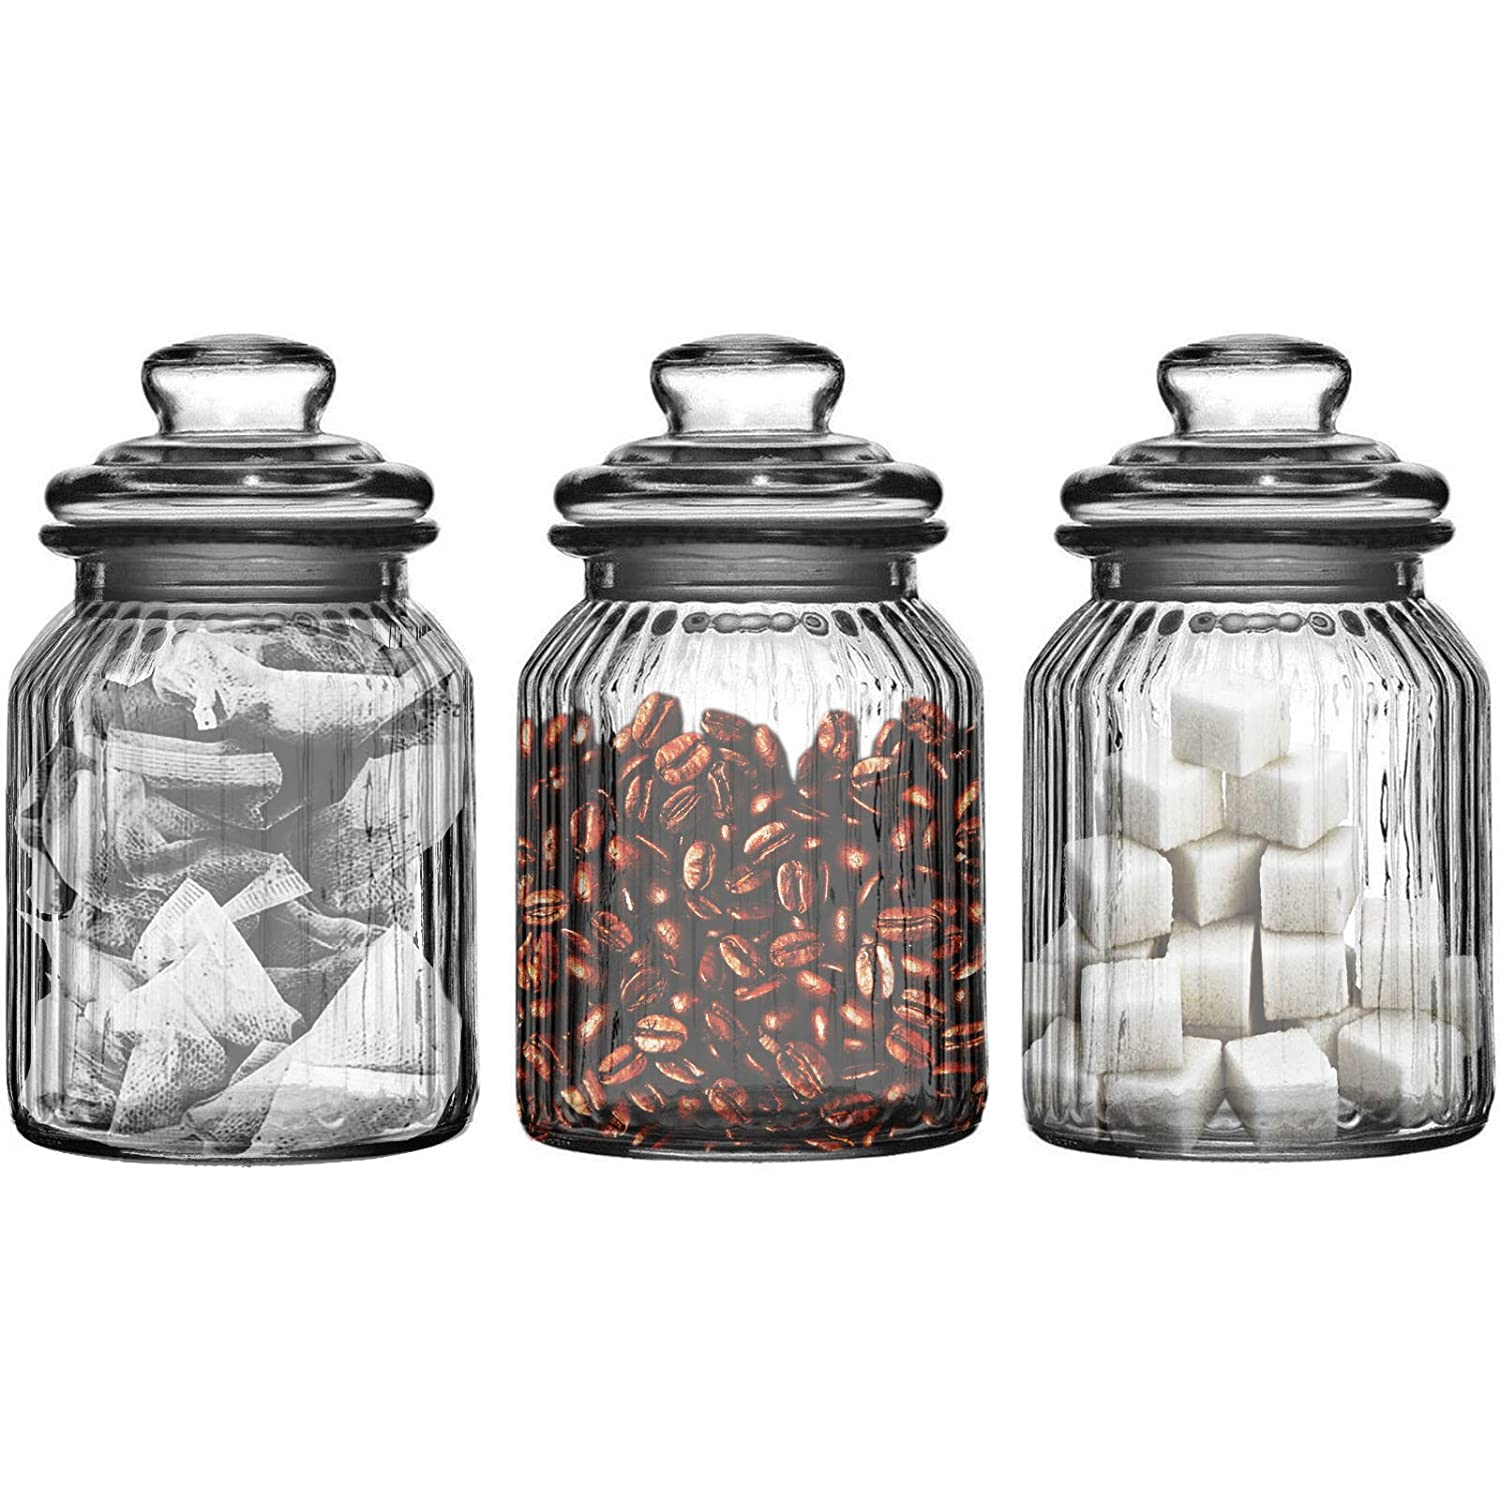 Kitchen Storage Canisters Set Of Three Storage Jars 990ml Ribbed Glass Tea Coffee Sugar